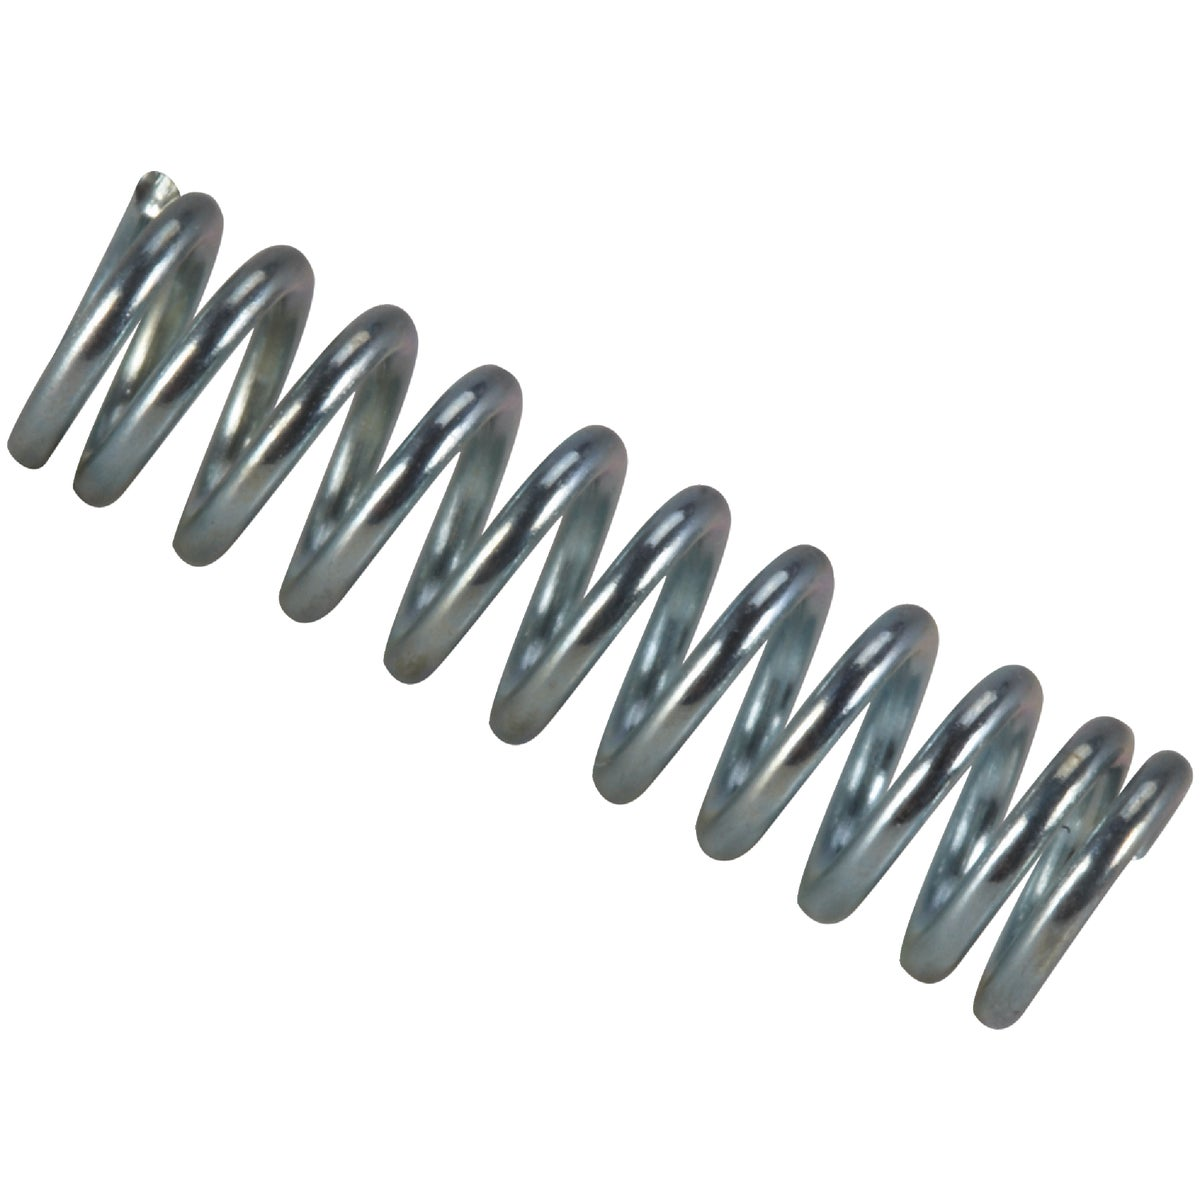 COMPRESSION SPRING - C-822 by Century Spring Corp